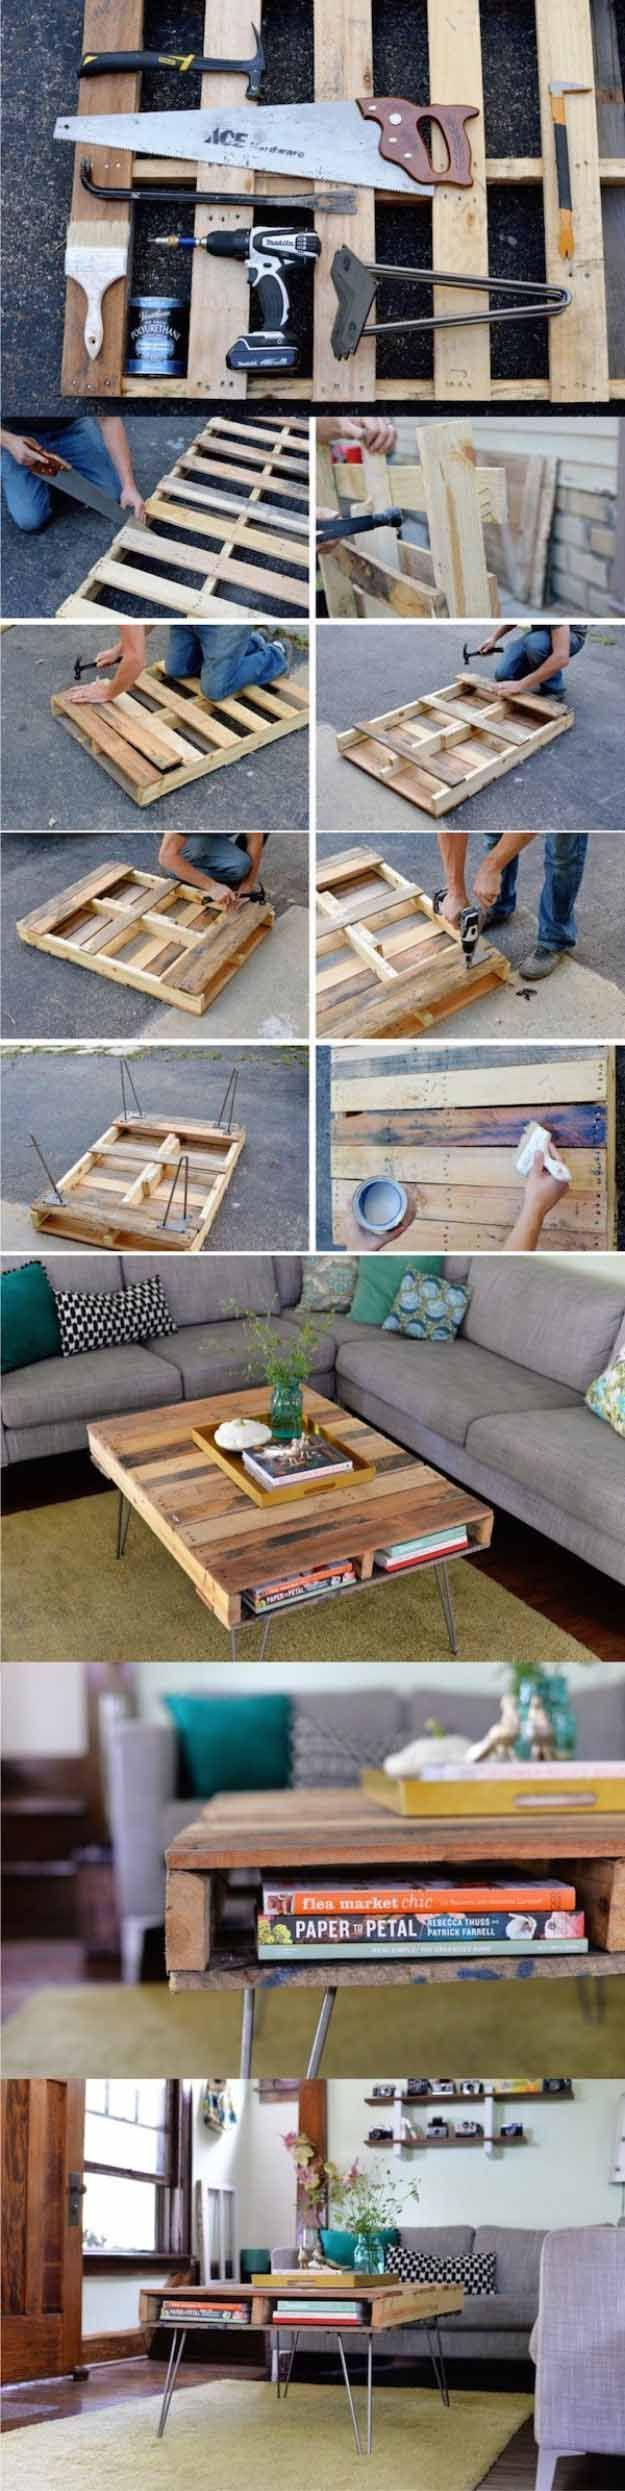 Ty s tricks home repair secrets plus cheap and easy projects to transform any room